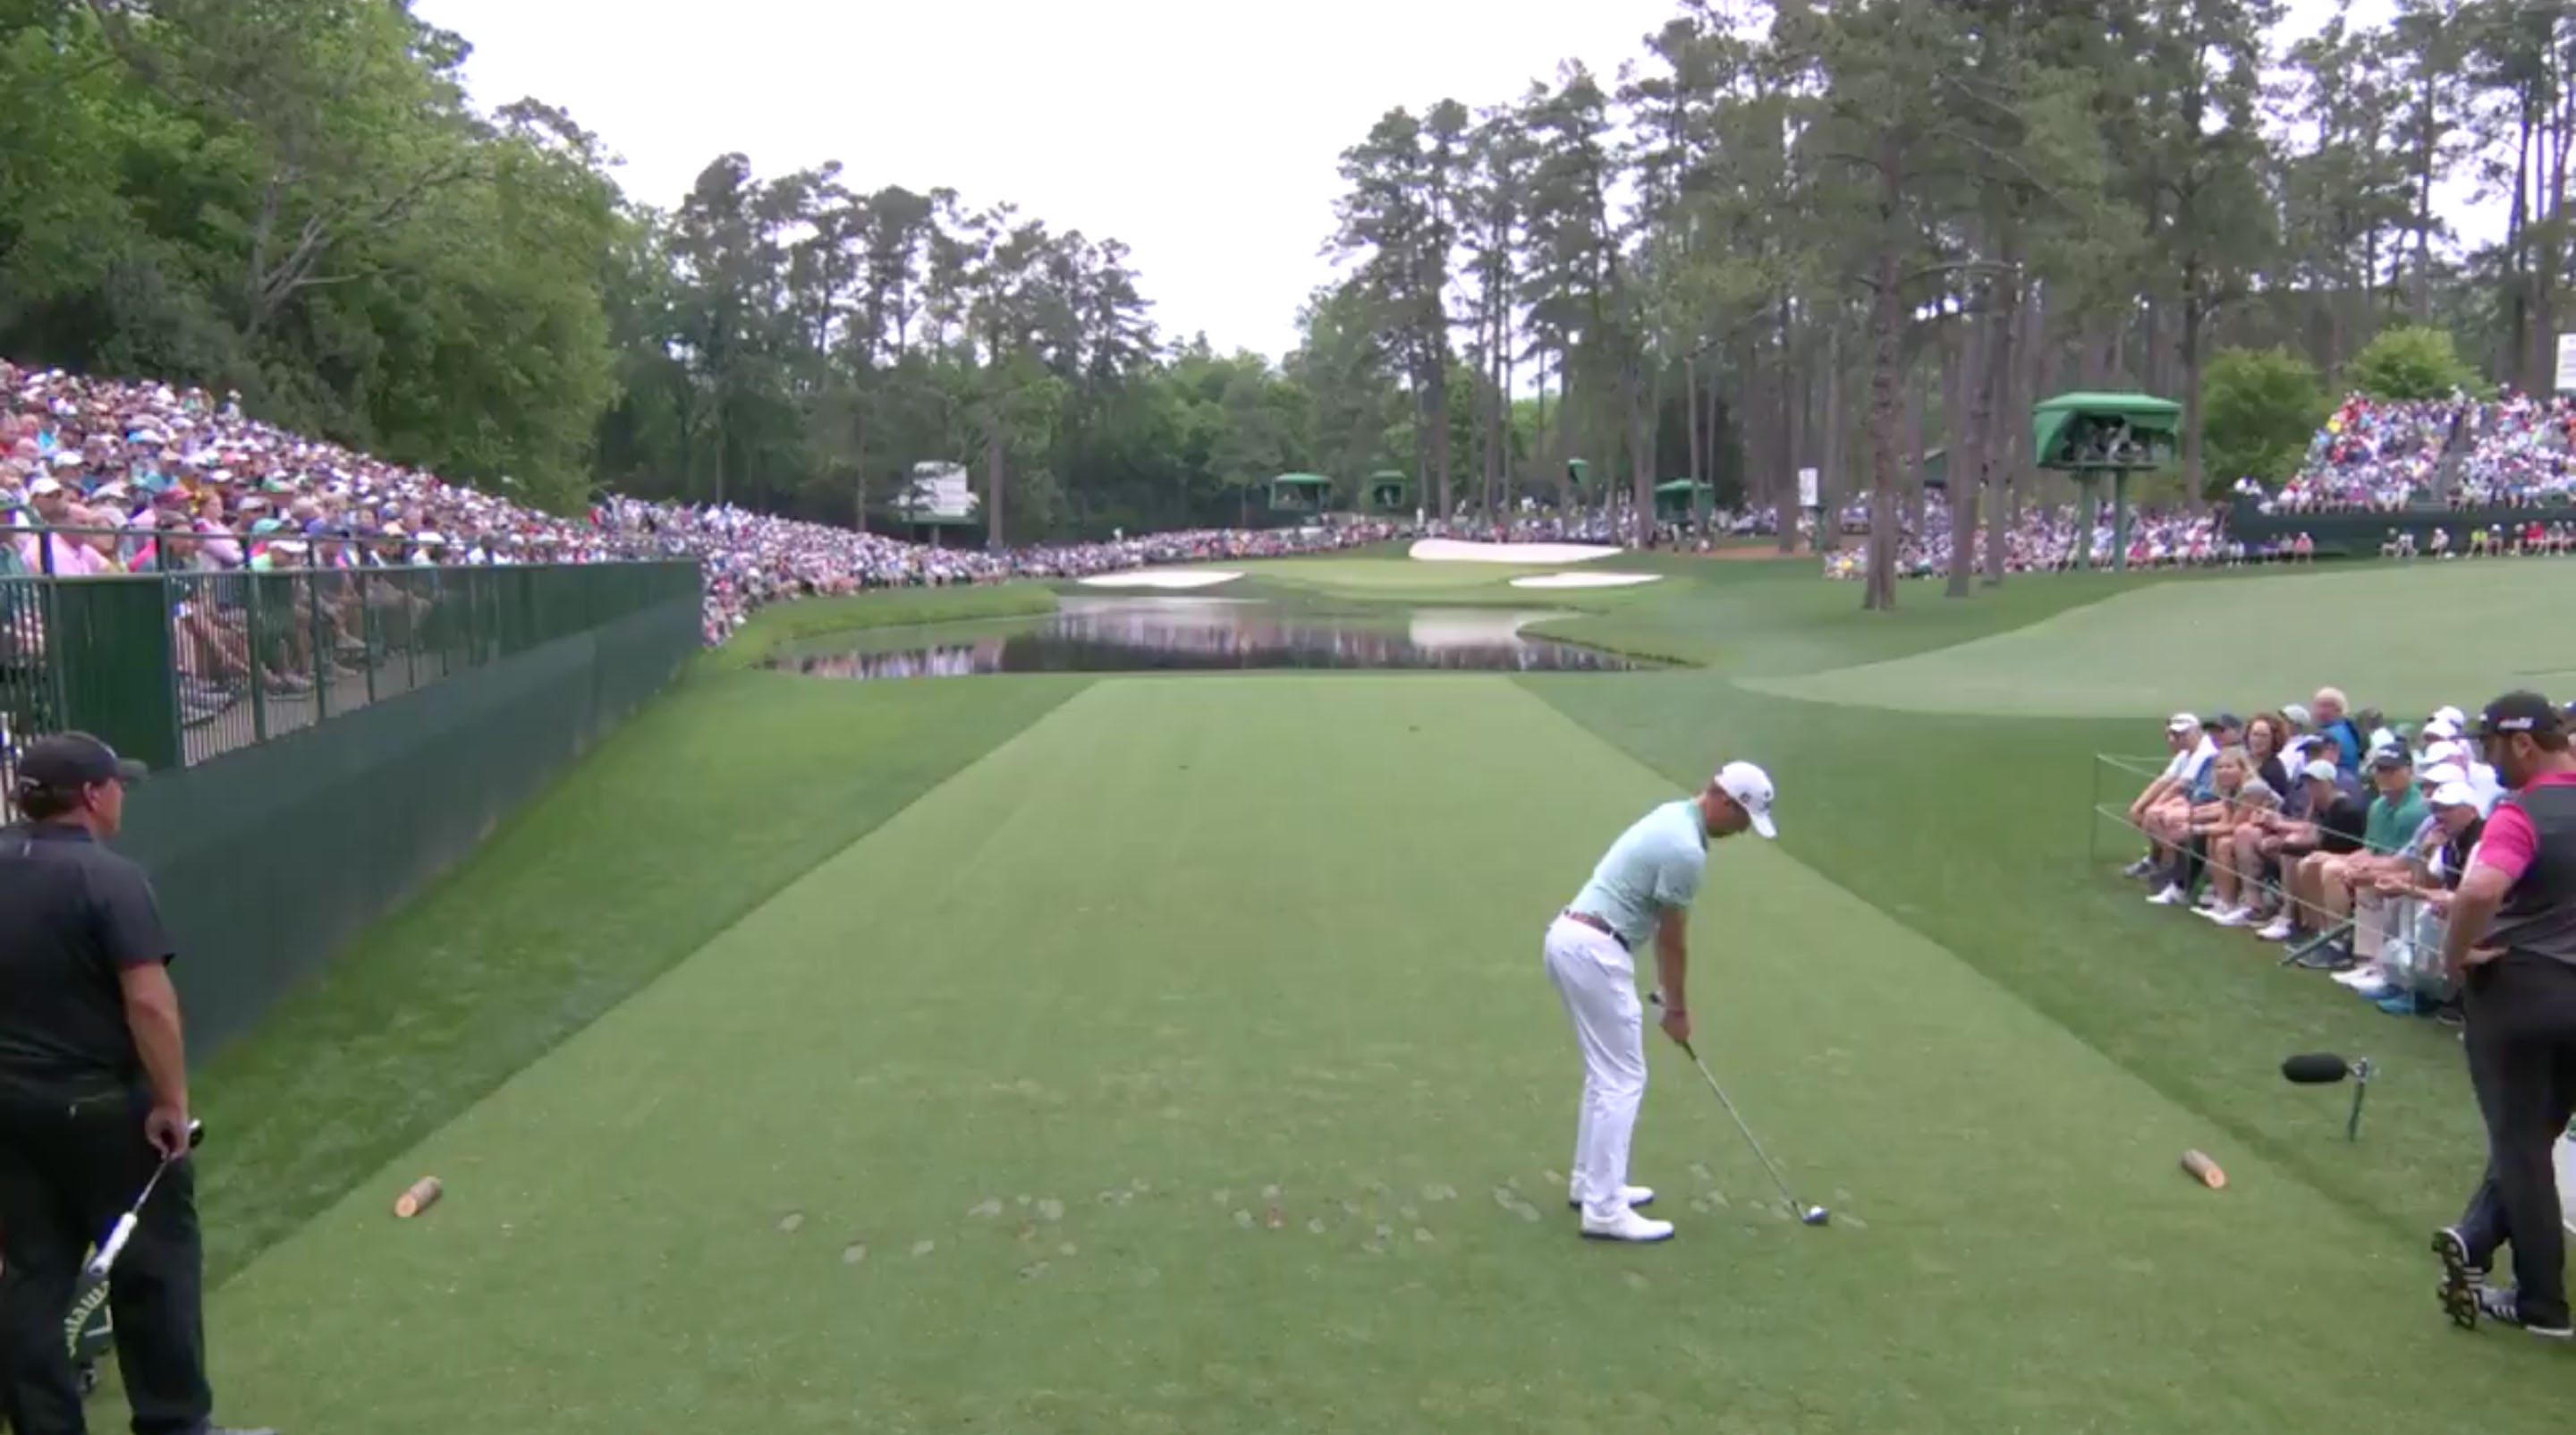 Justin Thomas hole in one